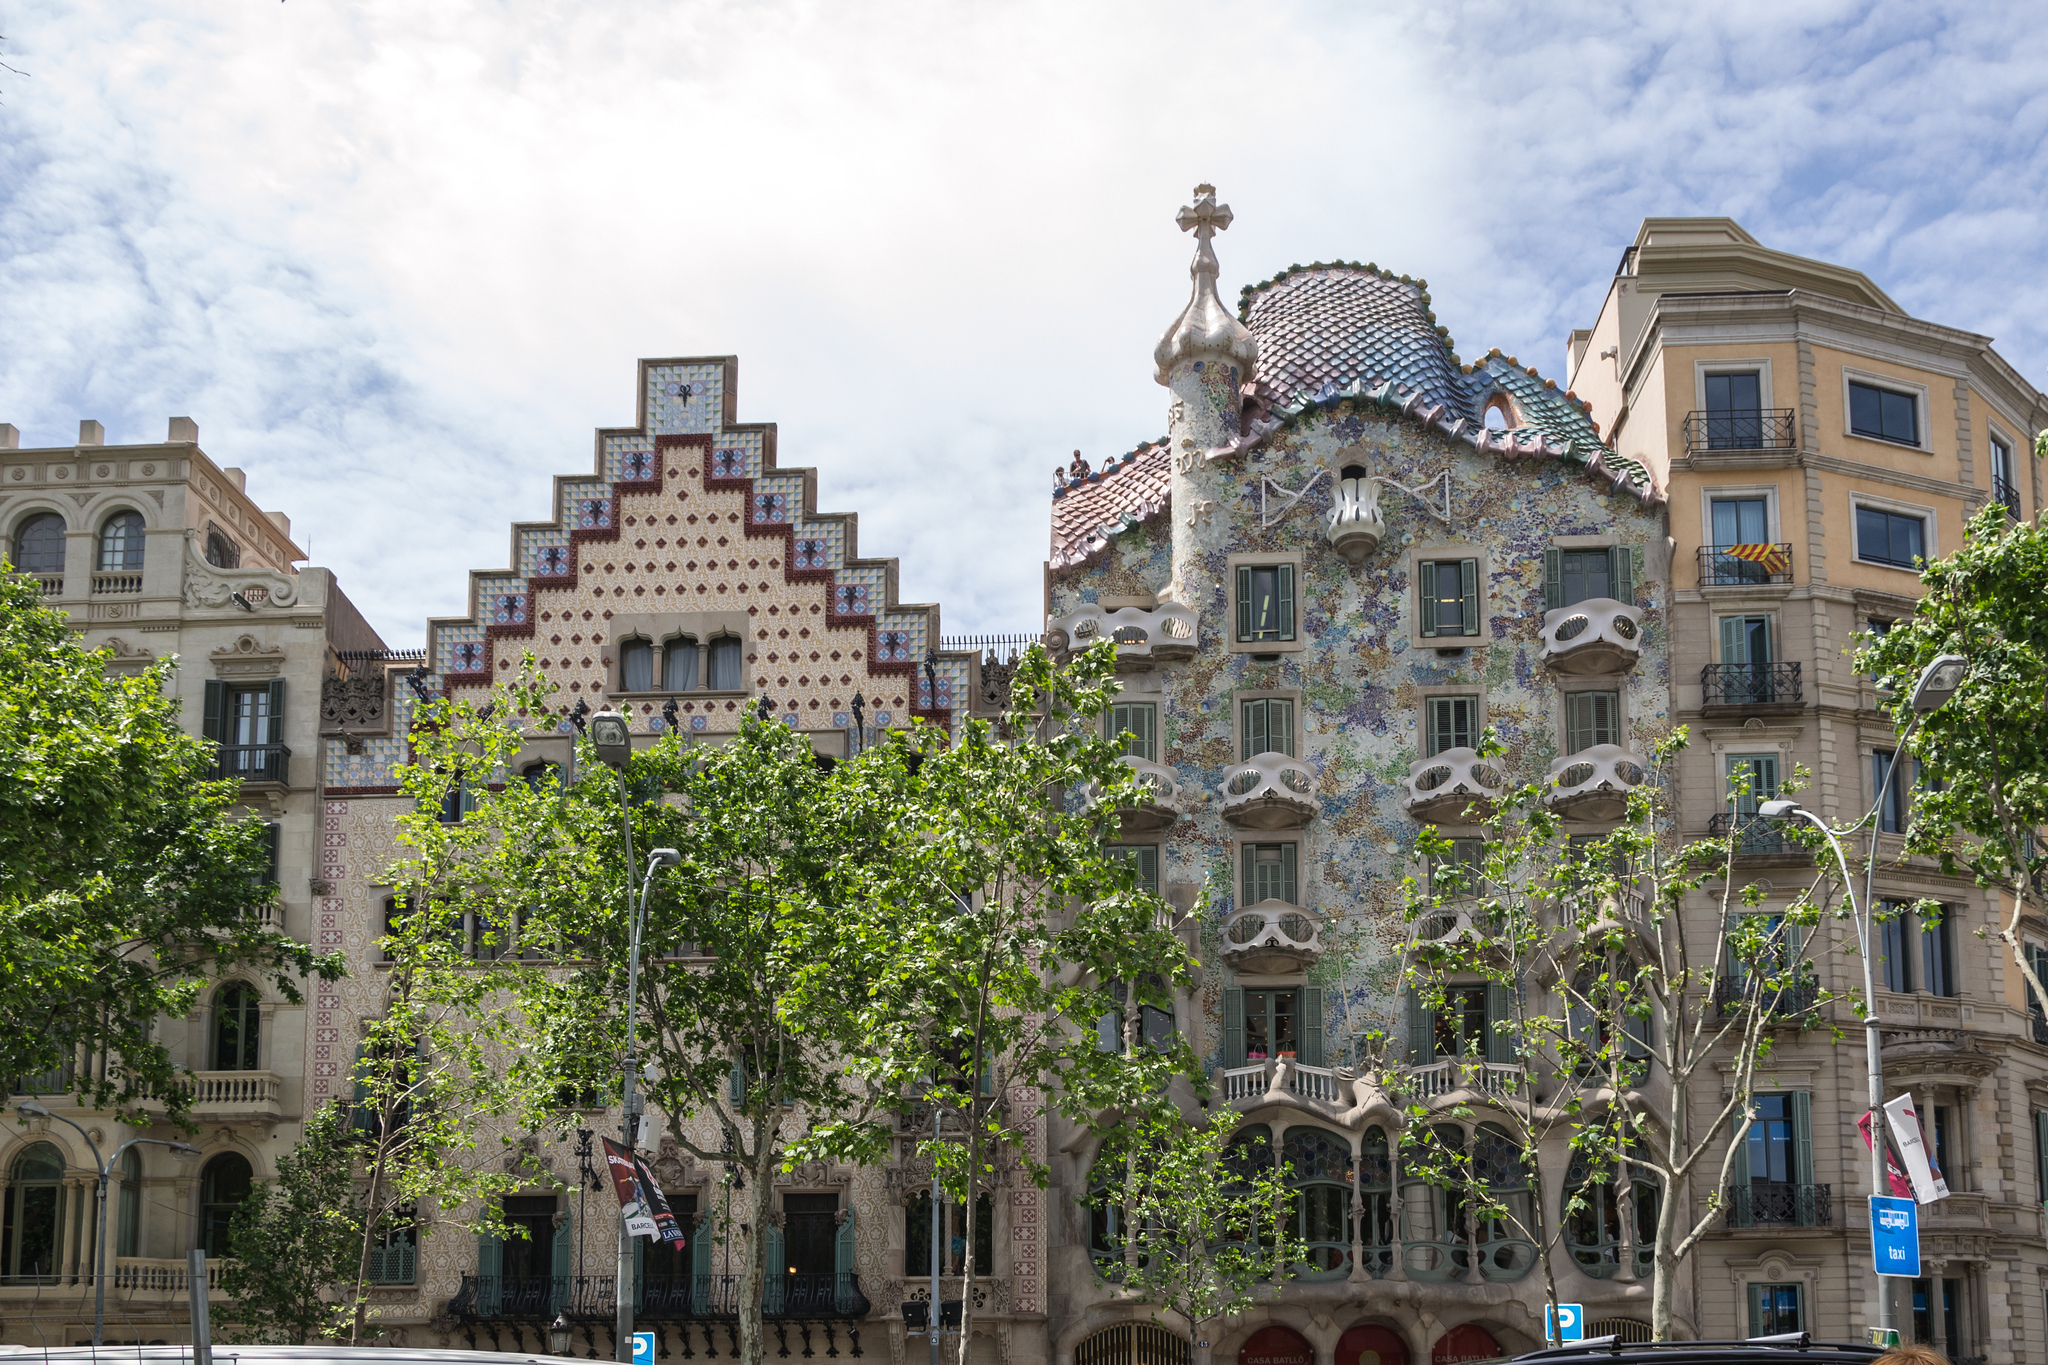 Casa Batlló on Passeig de Gracià © dconvertini